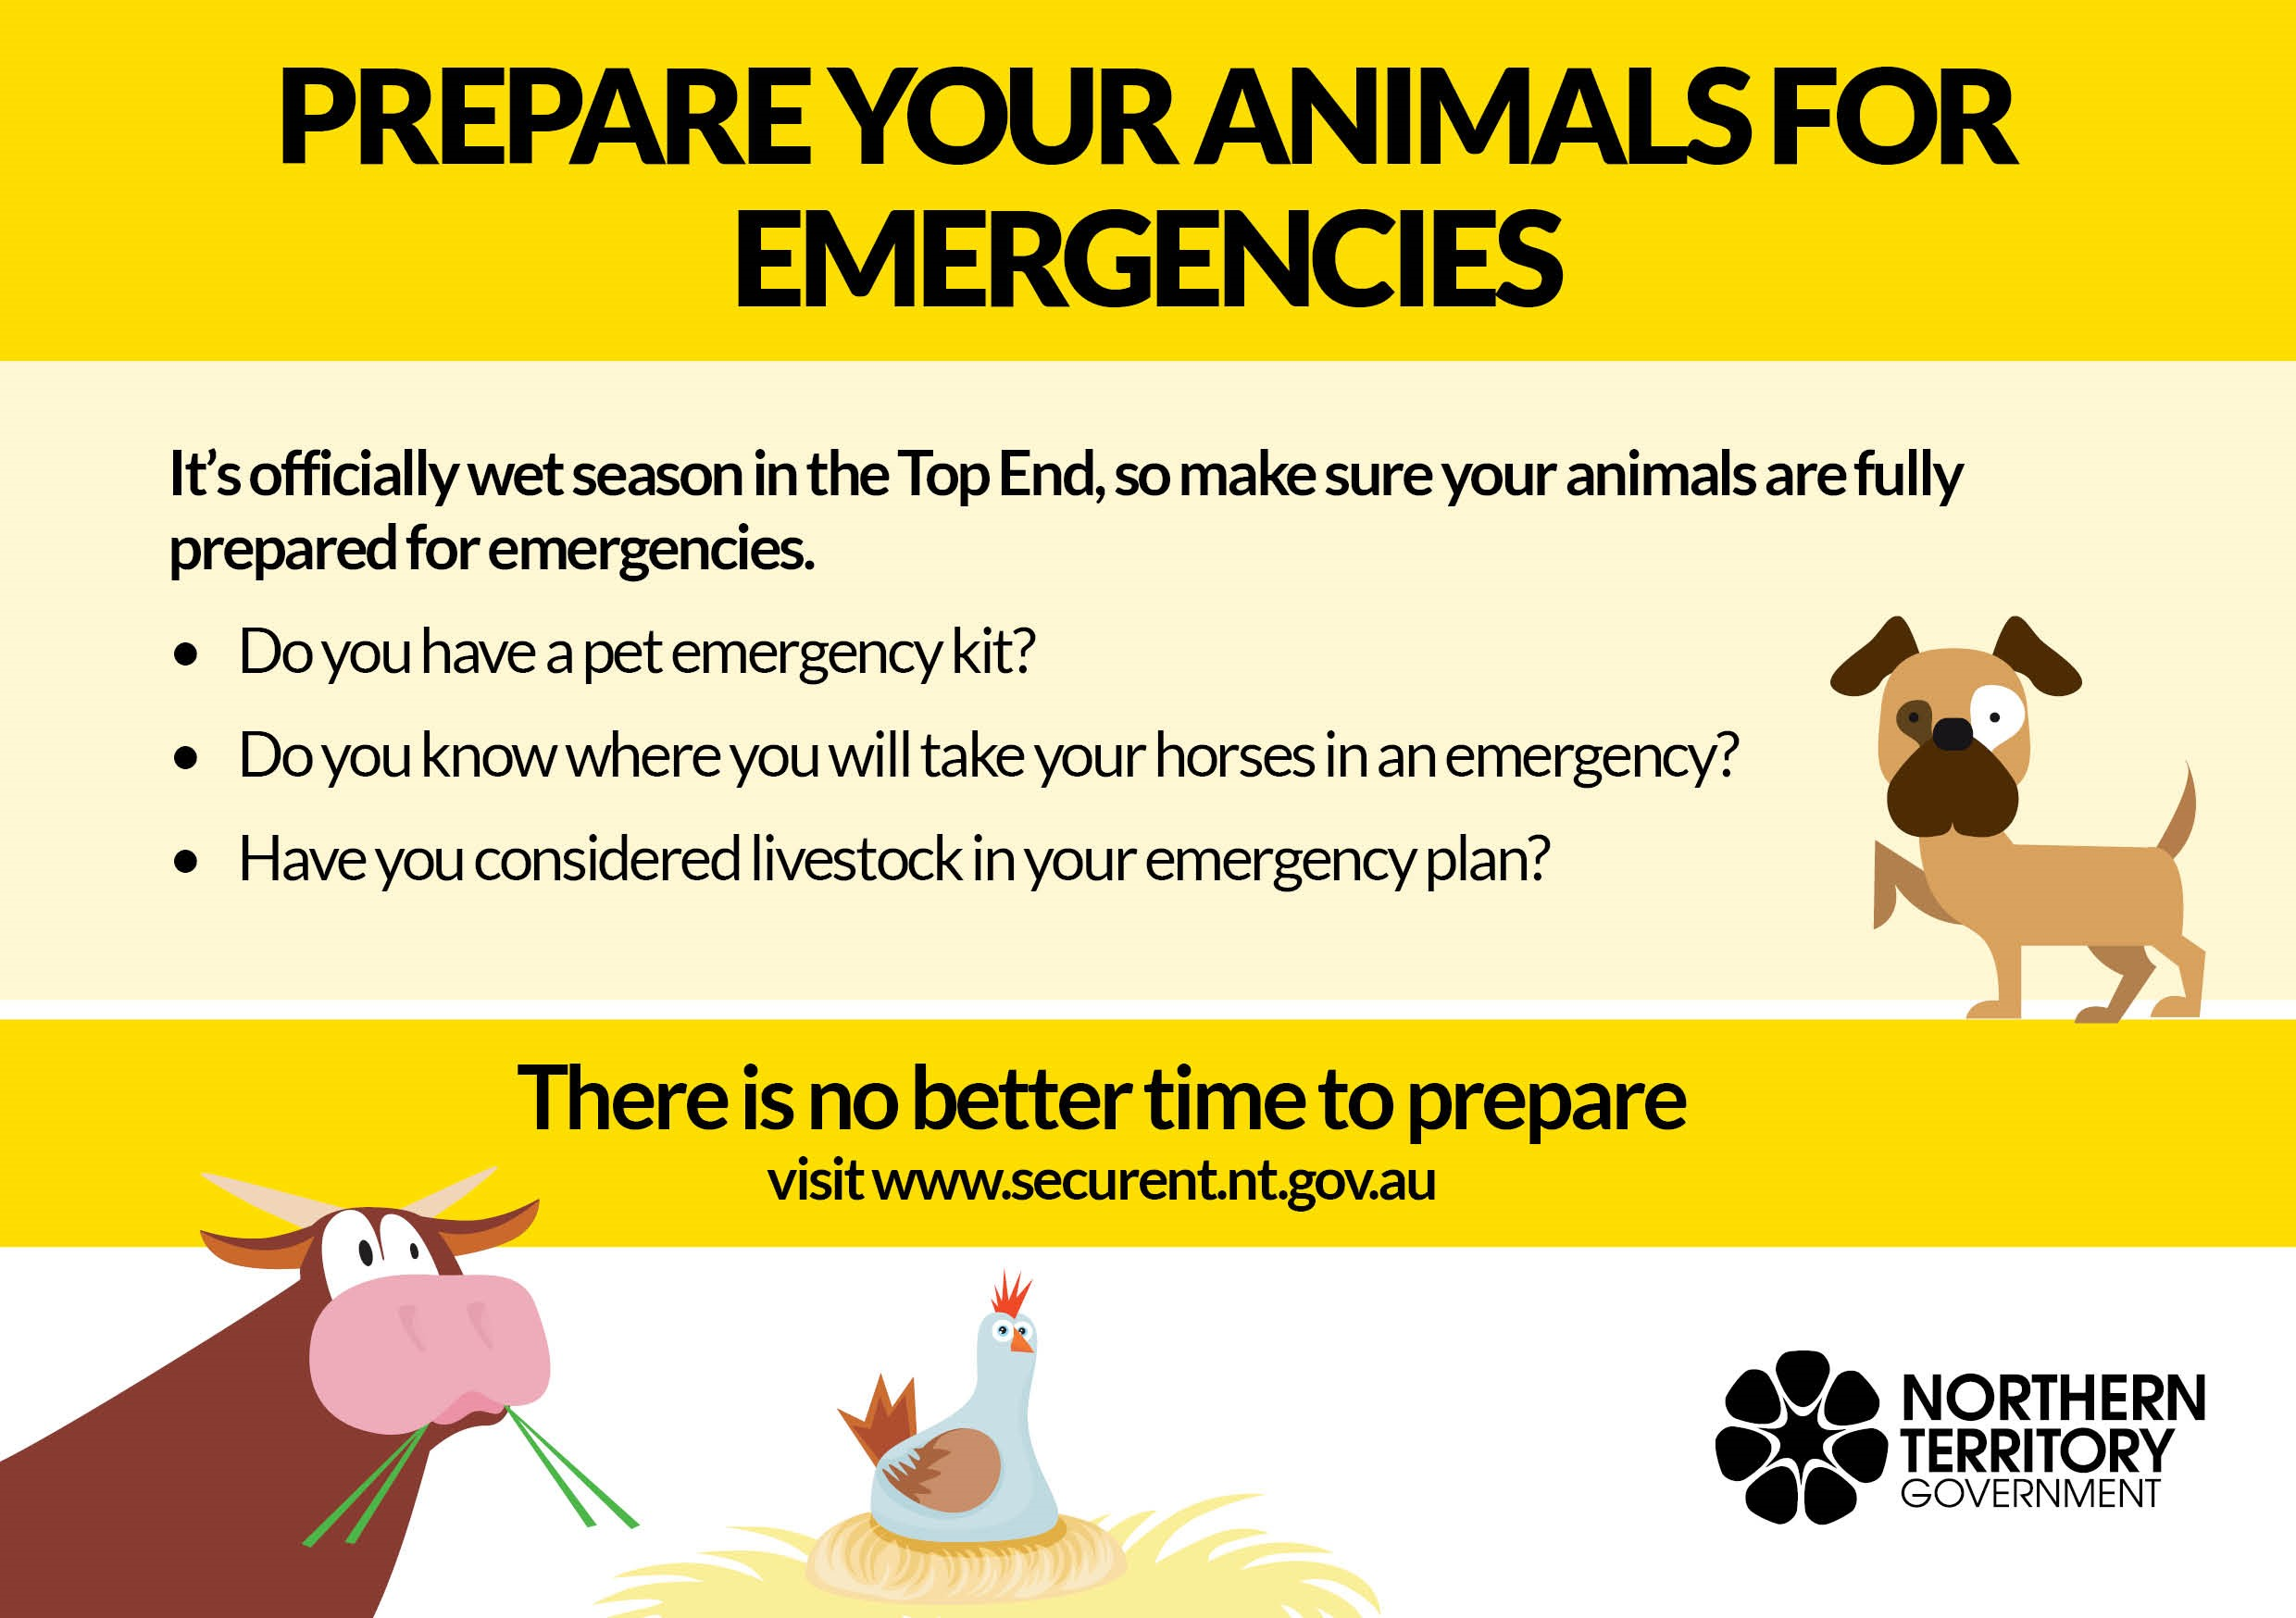 Prepare your animals for emergencies